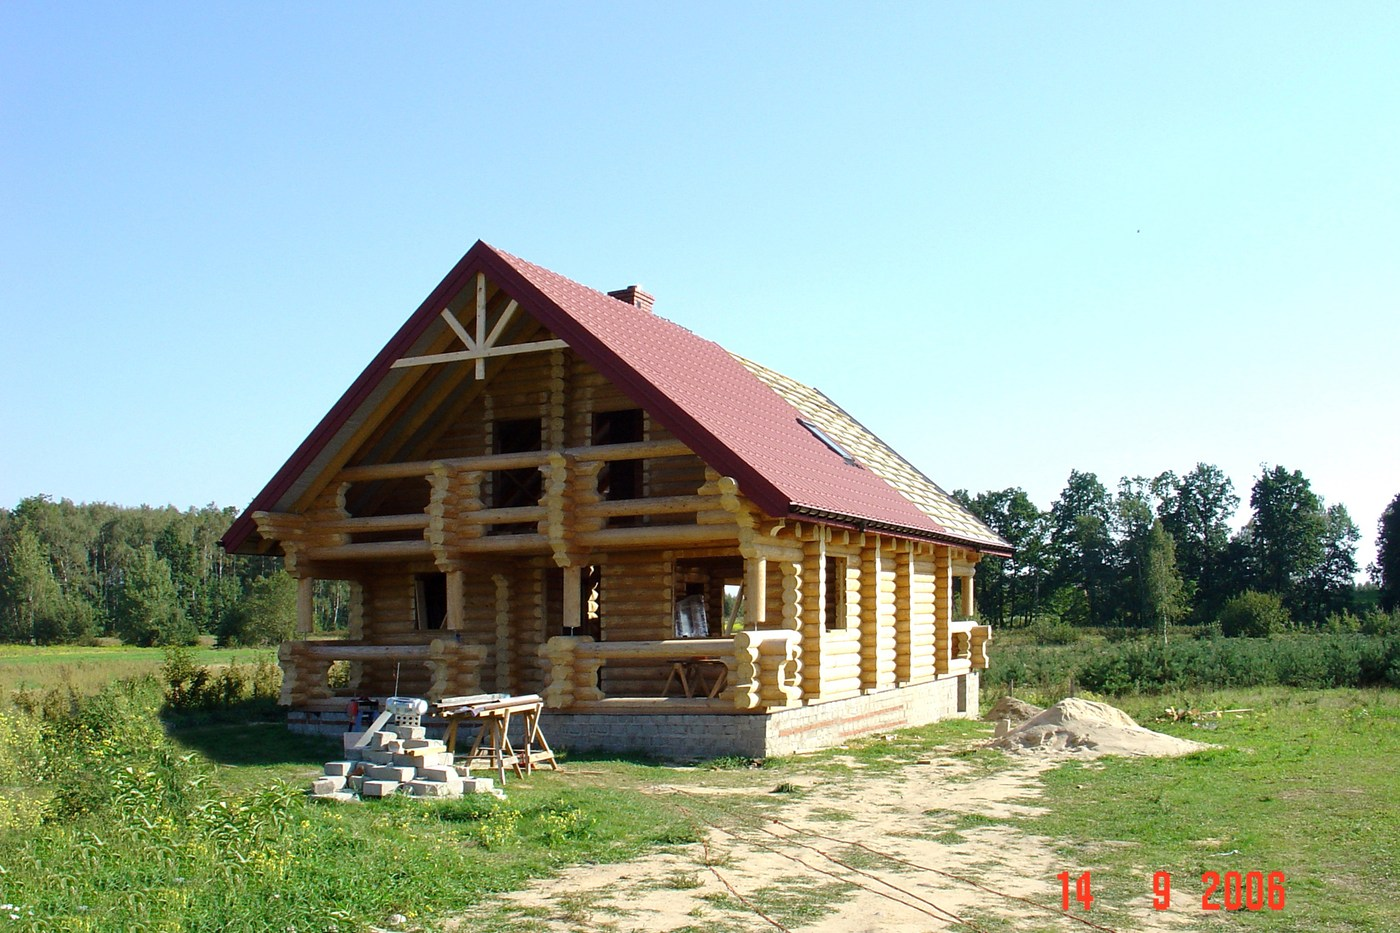 Wood Home Designs: Wooden House Plans: Eco Timber Country Wooden Homes